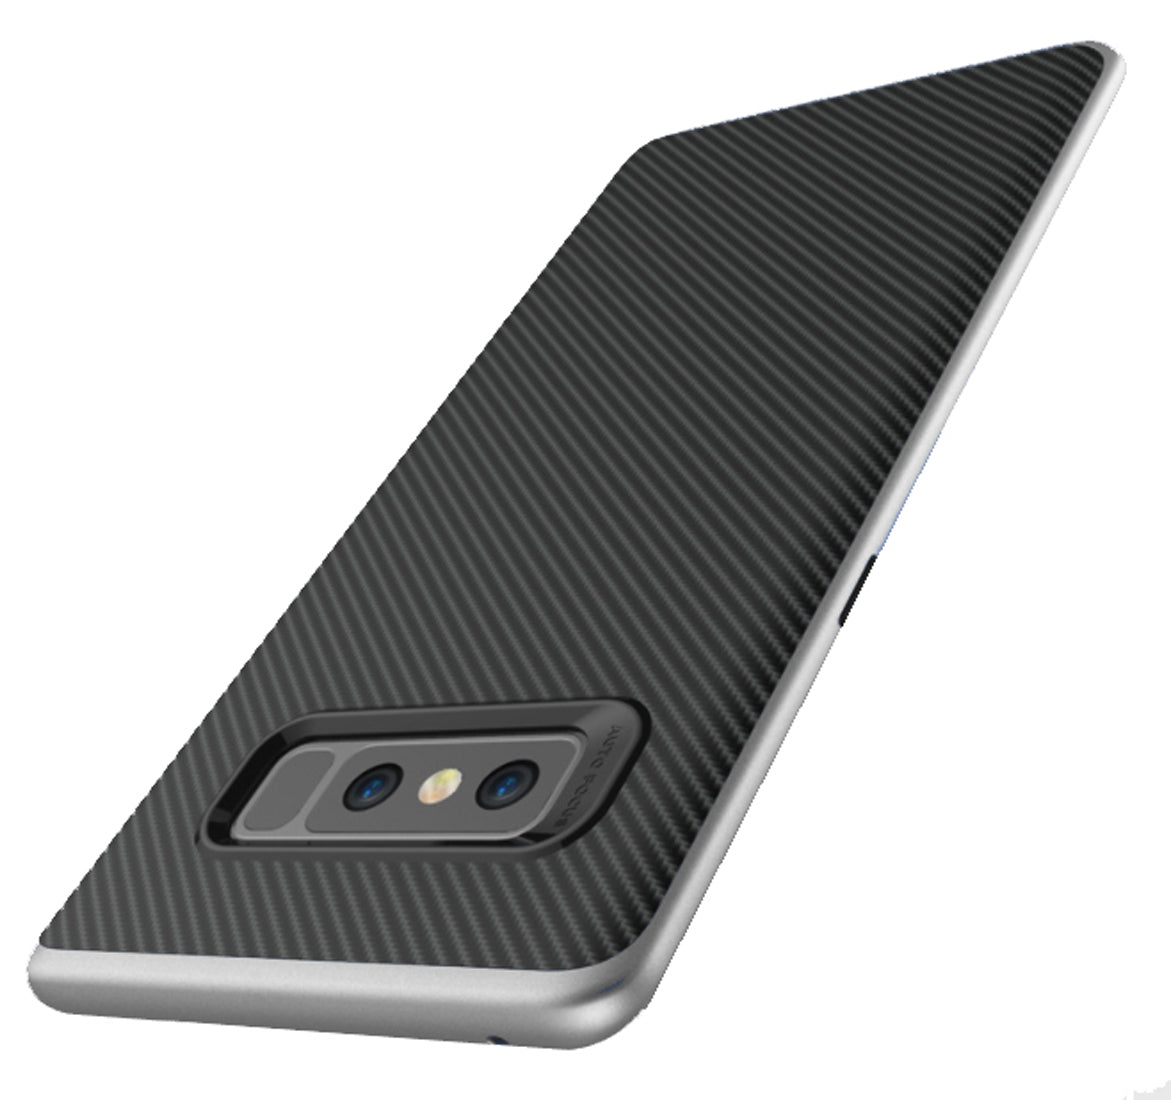 Hornet-II Ultra Thin Carbon Finish Shockproof Back + Bumper Case Cover for Samsung Galaxy Note 8 - Silver - Mobizang